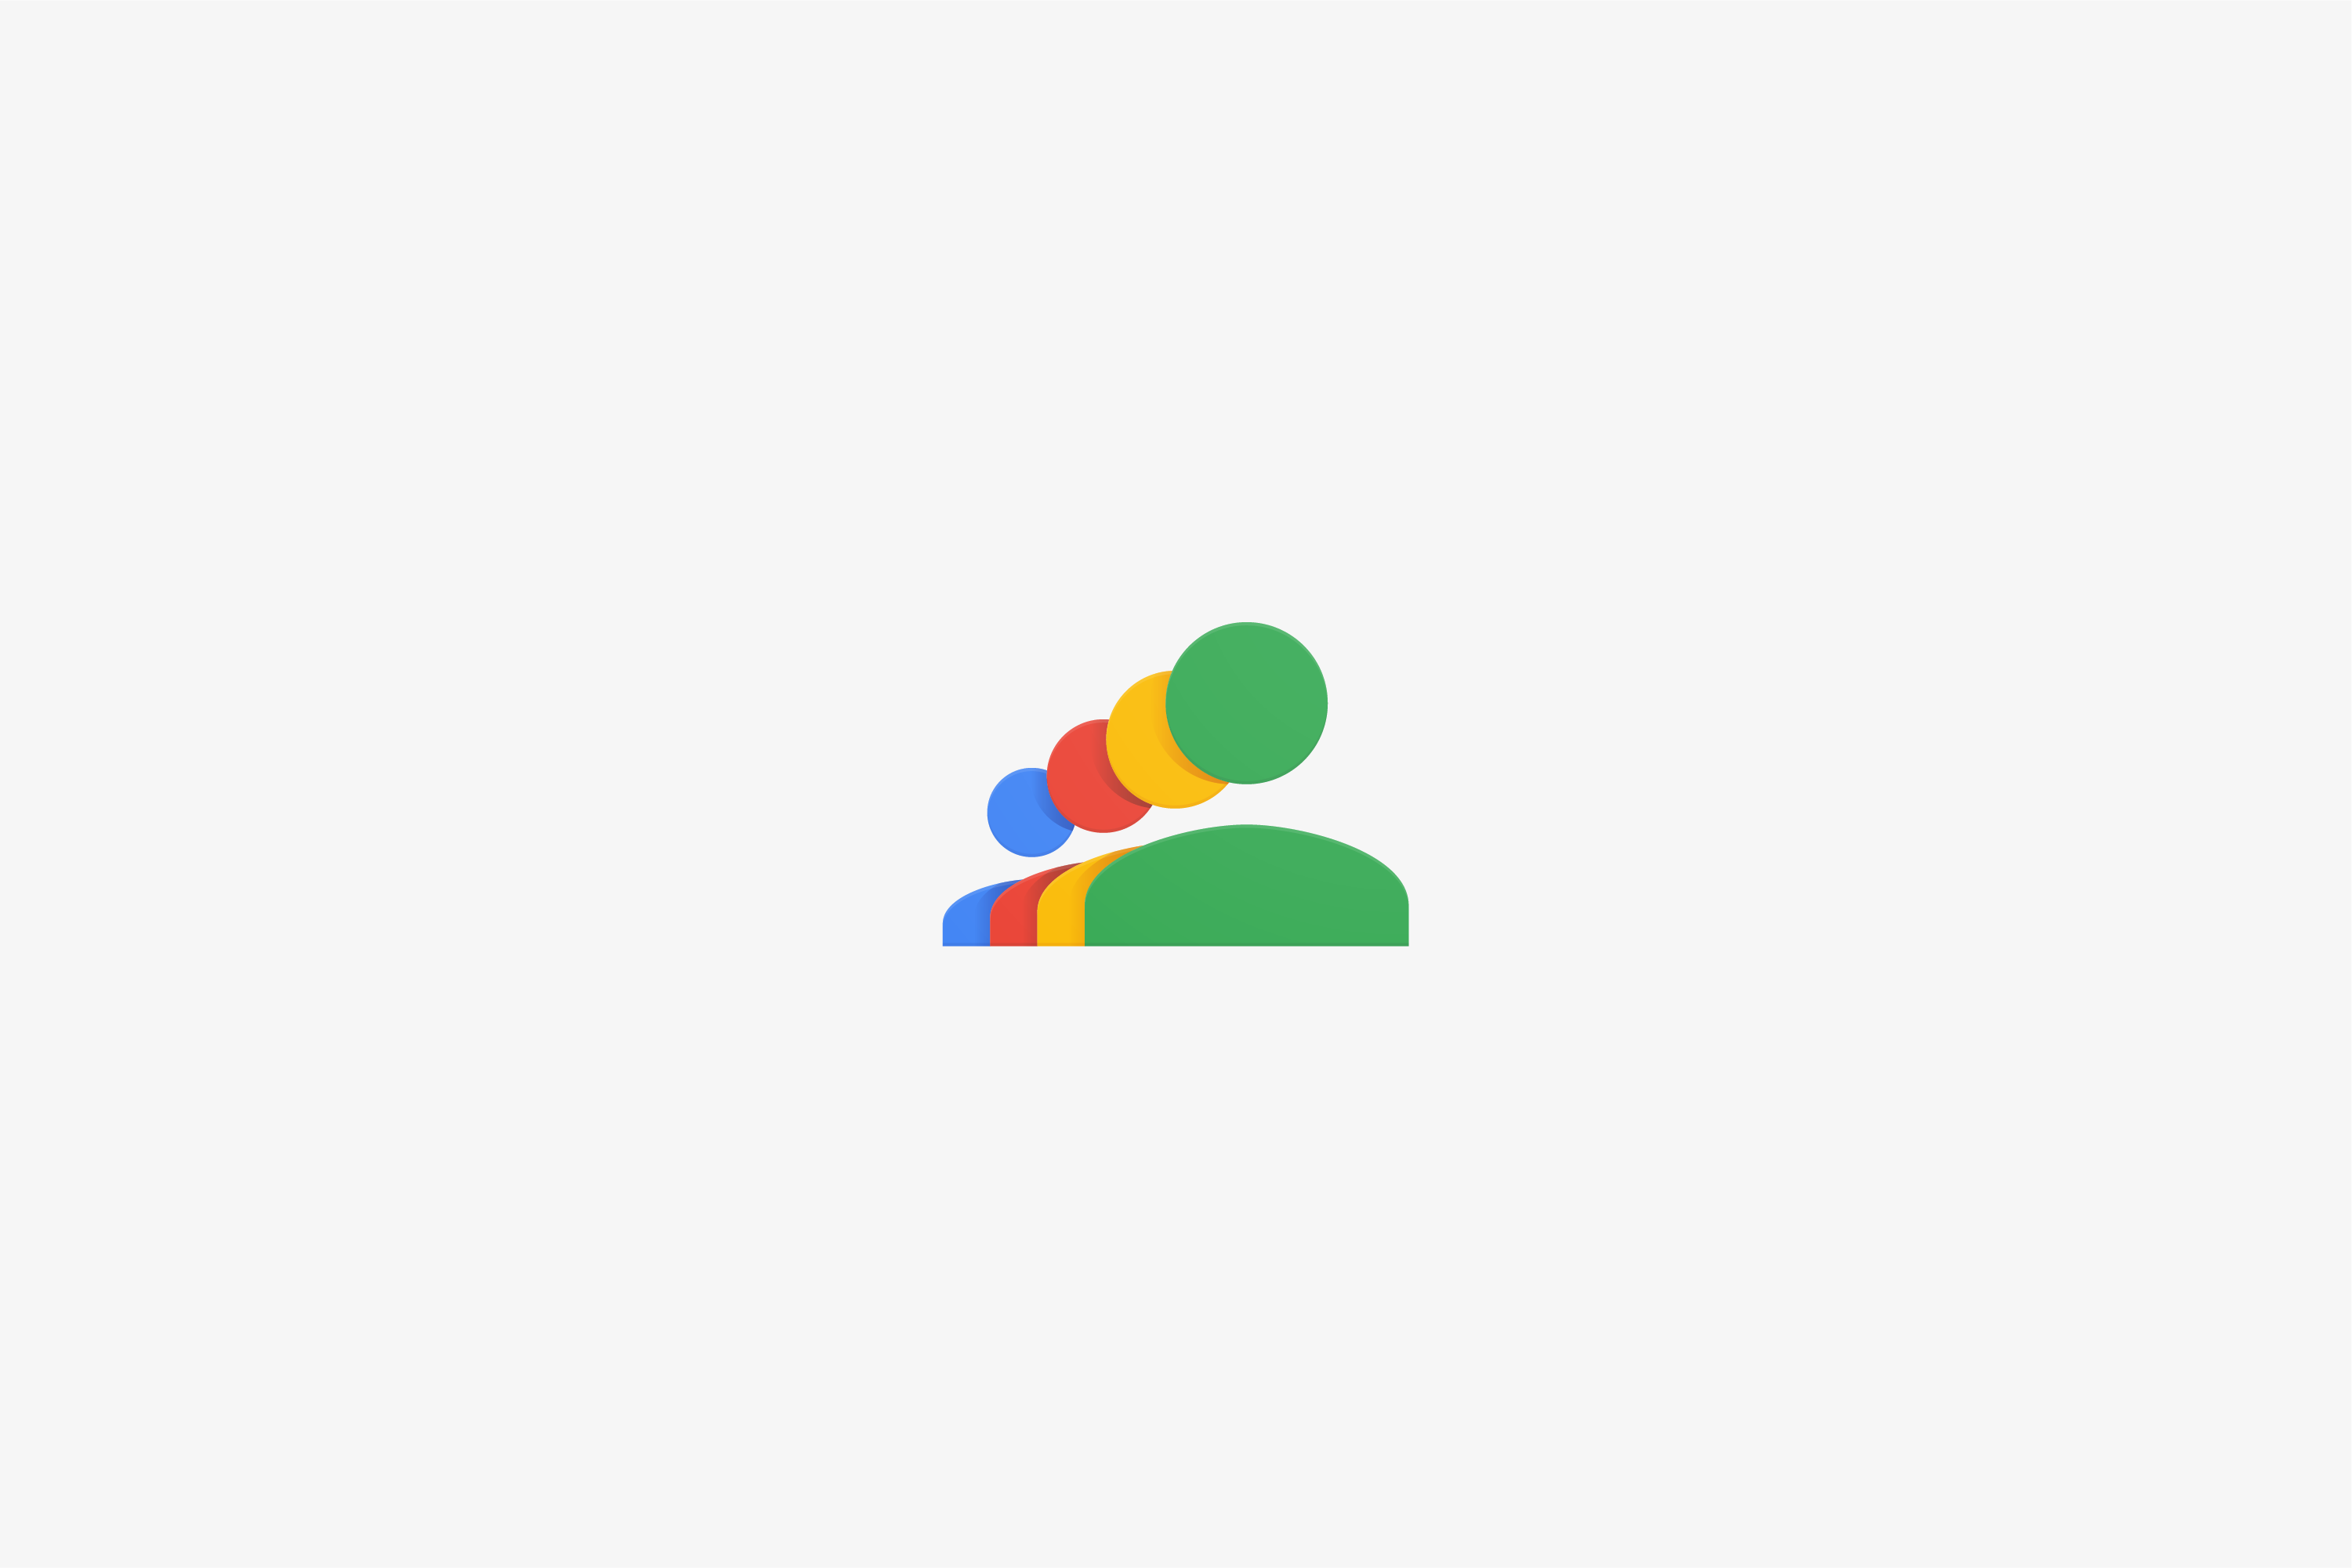 Google Material Design Logo - Talent Revolution